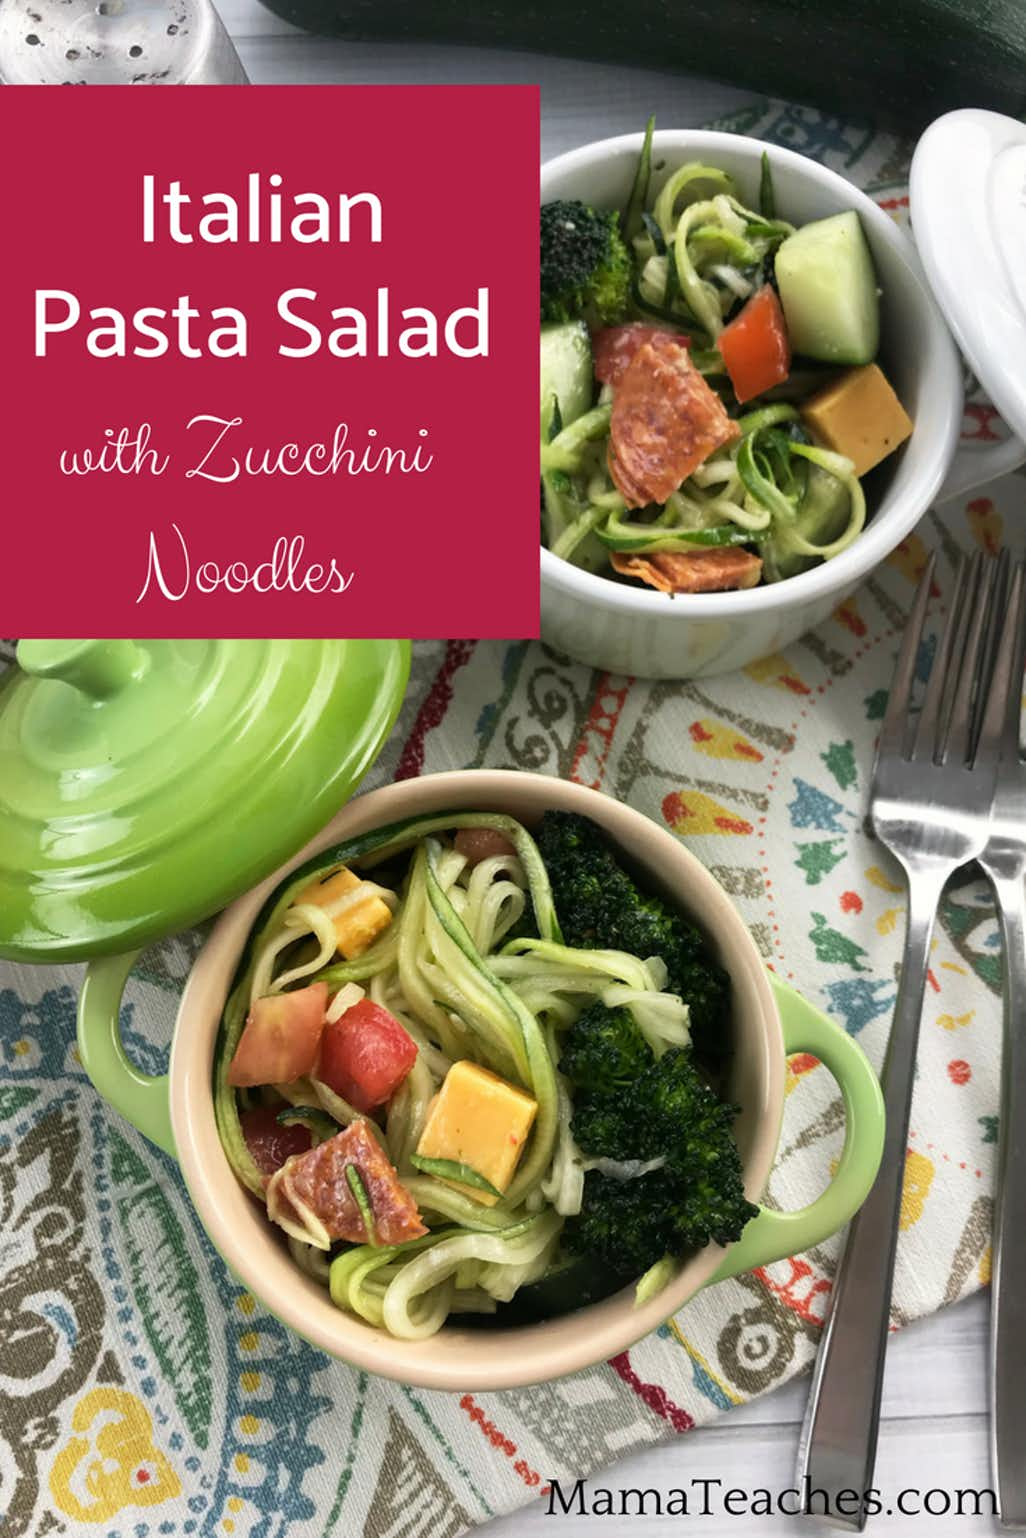 Italian Pasta Salad with Zucchini Noodles